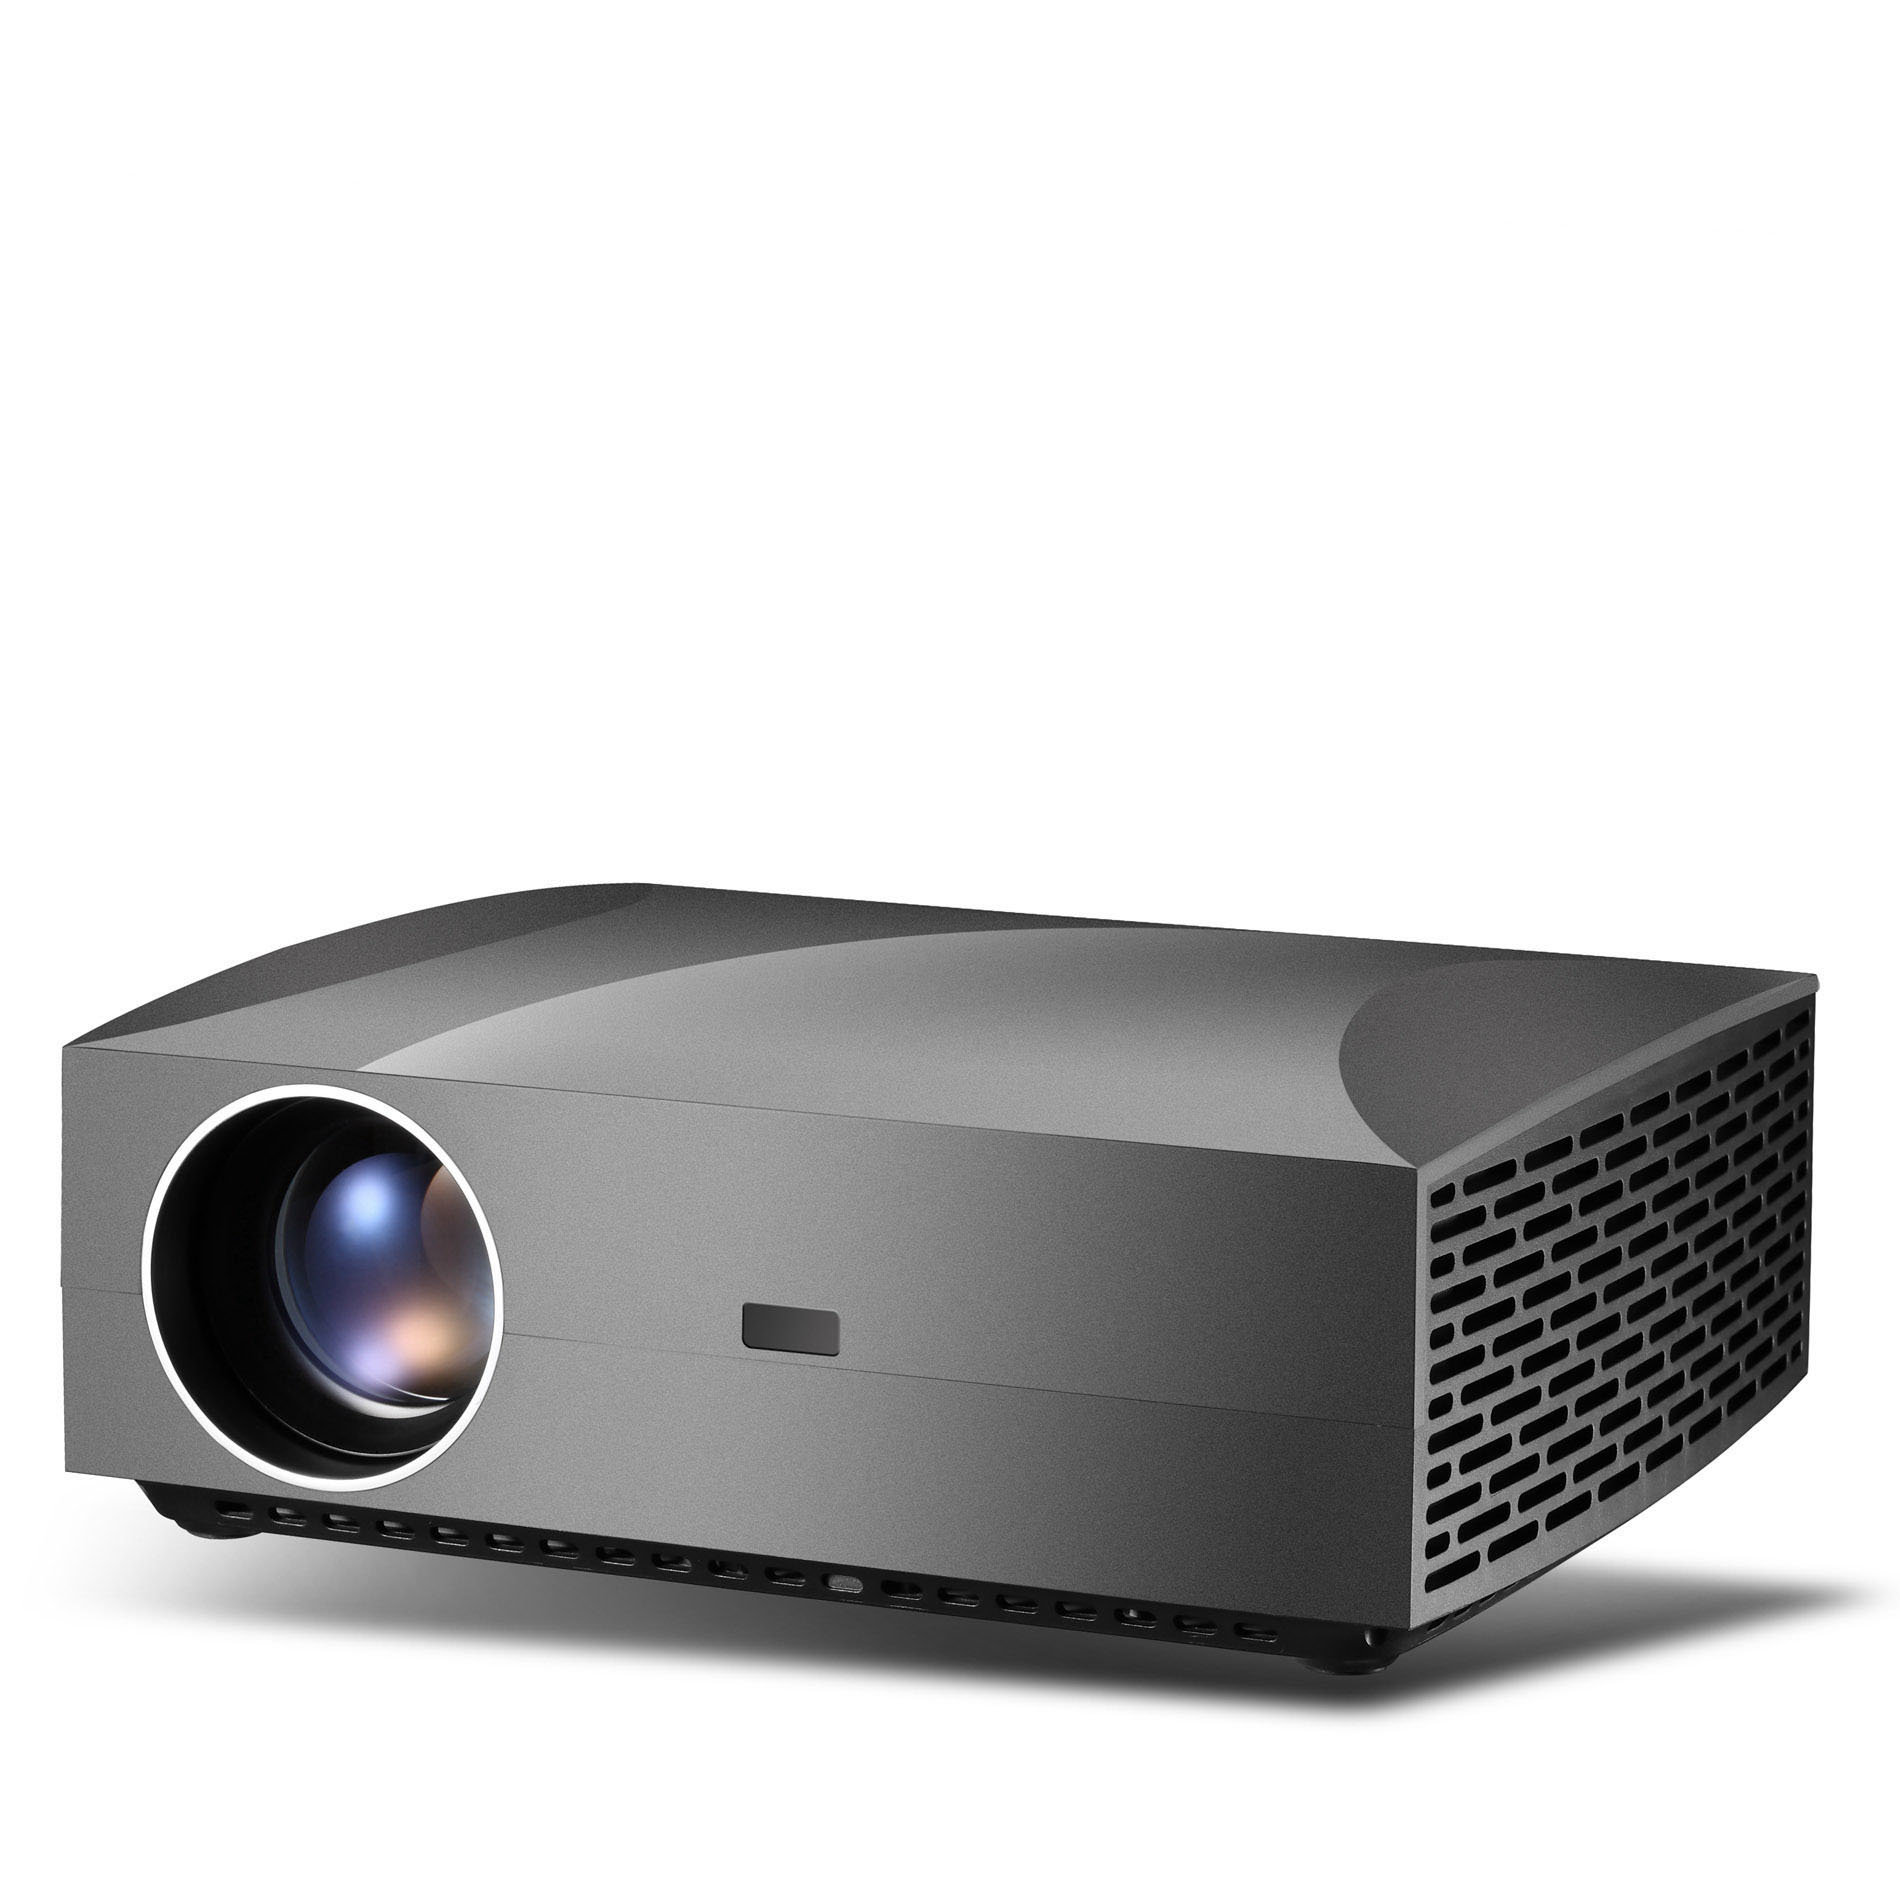 VIVIBRIGHT F30 LCD Projector 4200 Lumens 50000hrs Lamp Life Home Theater FHD 1920 x 1080P Proyector for Home Office Entertainmen|LCD Projectors|   - title=